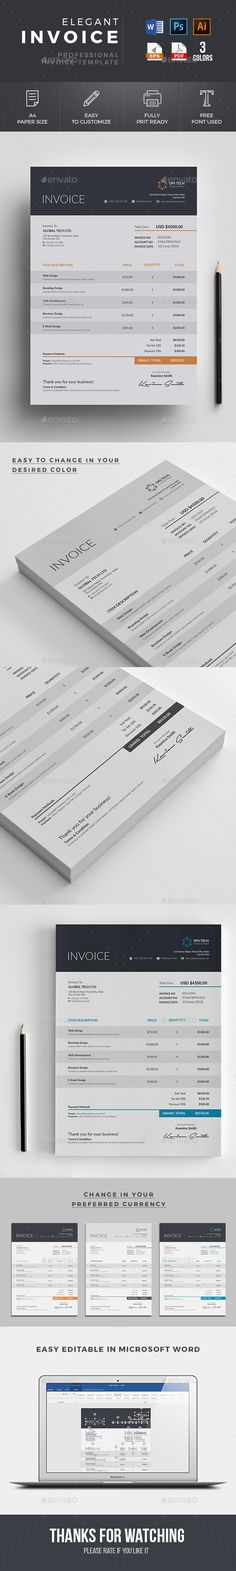 invoice | design - print layouts | pinterest | invoice design, Invoice templates